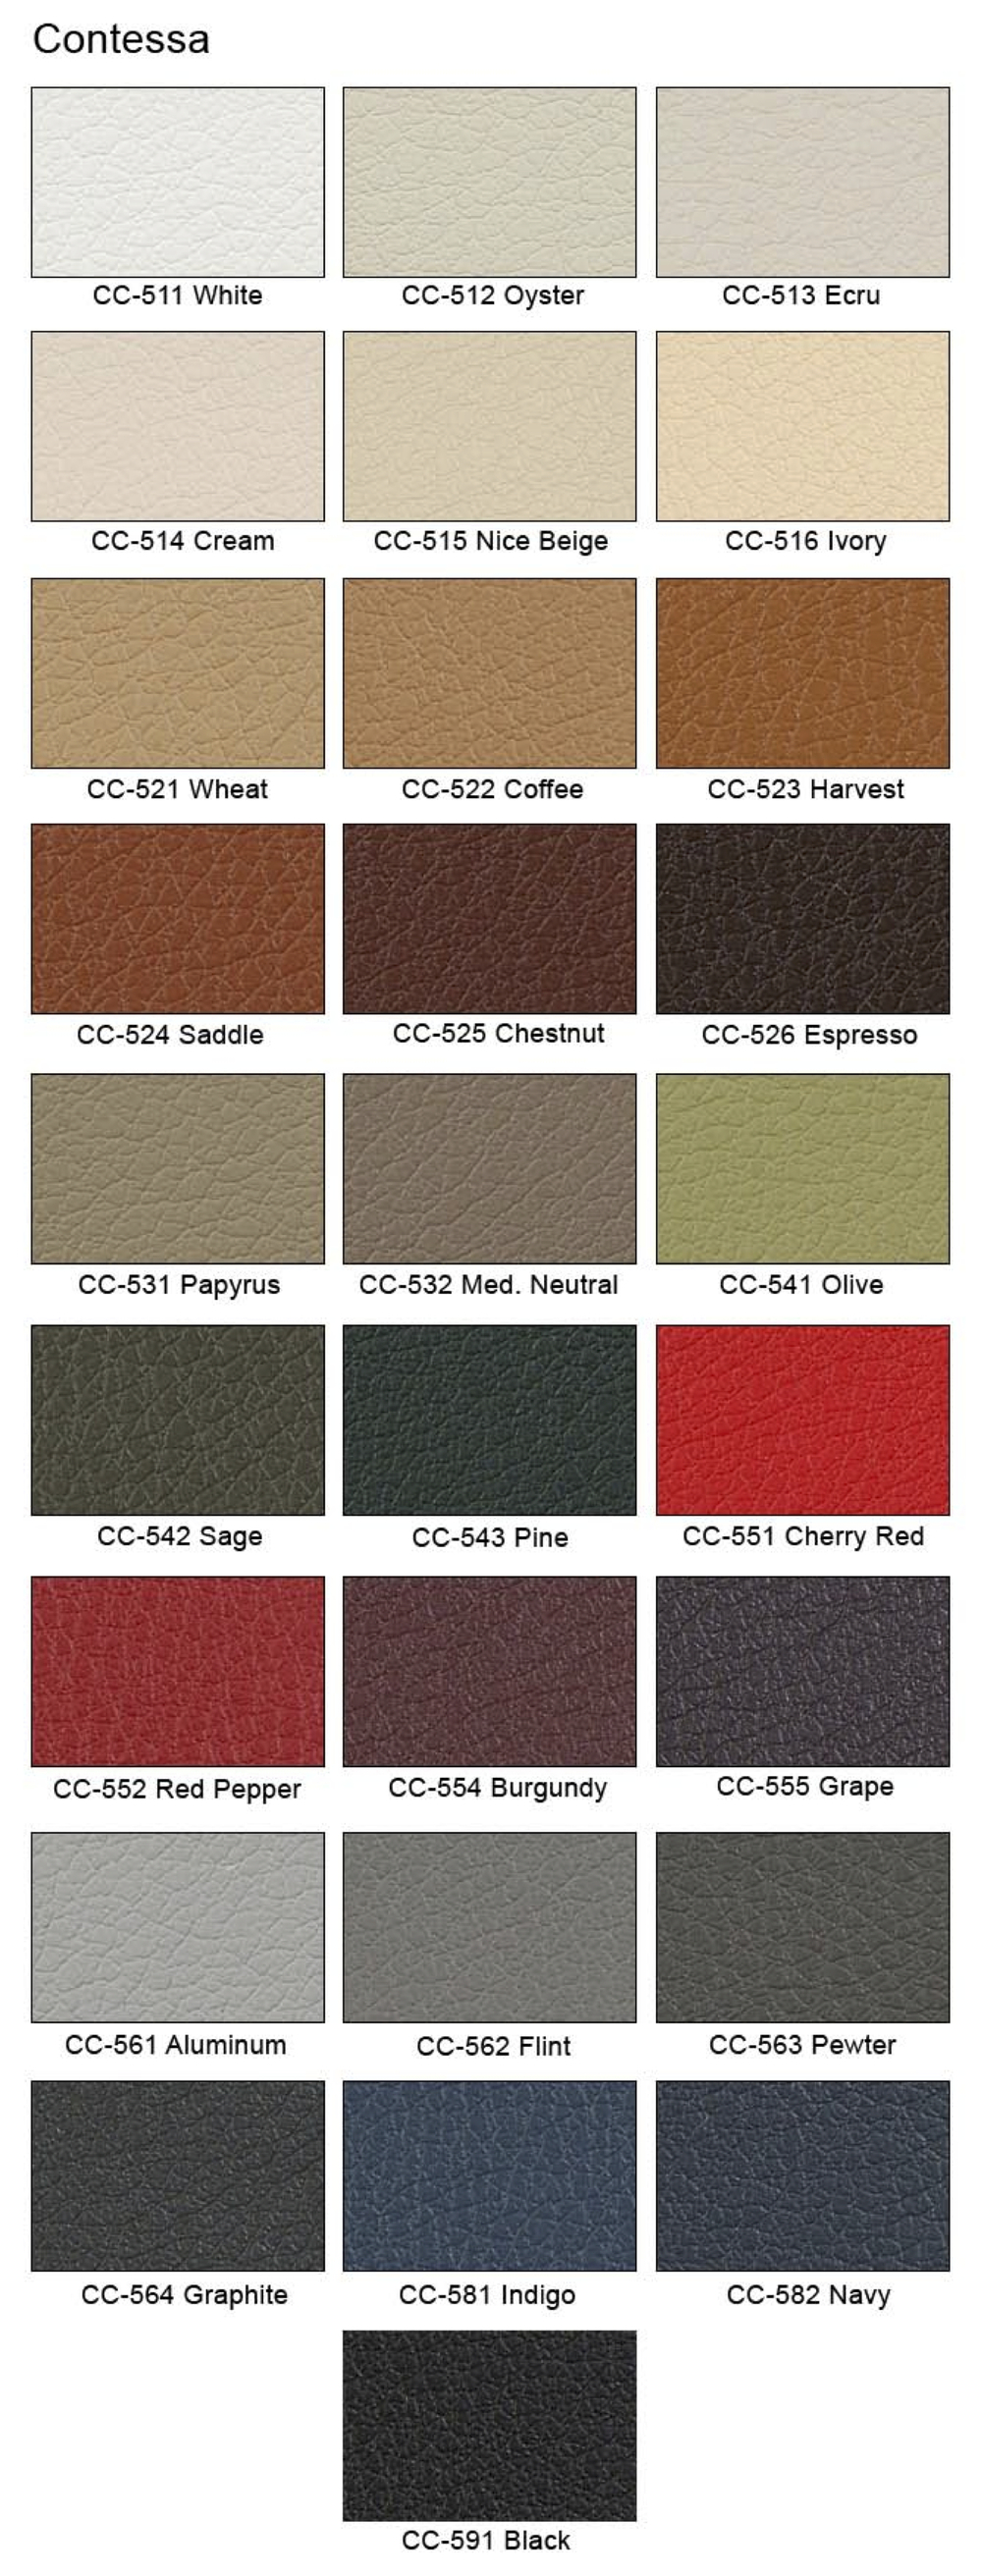 Contessa Leather Swatches